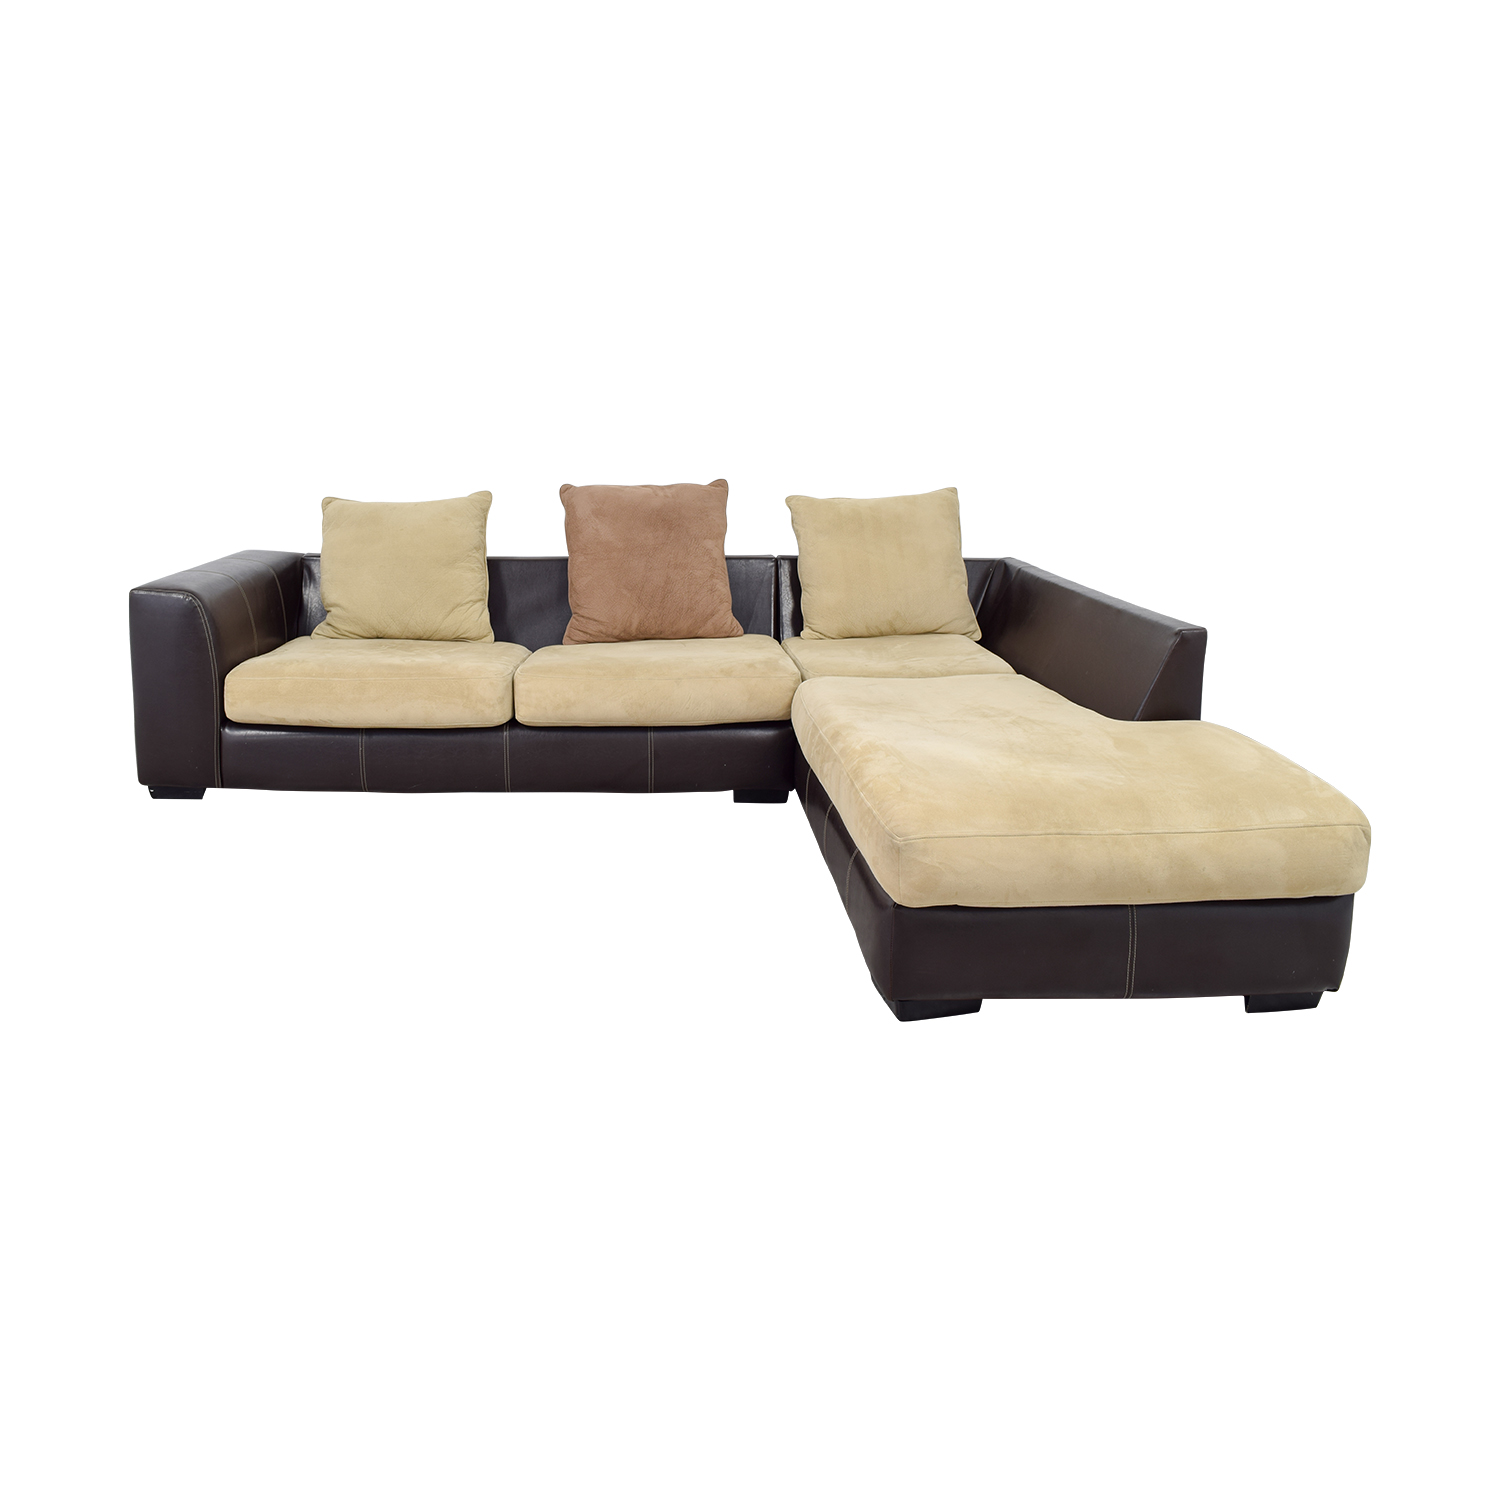 L -Shaped Brown Leather and Tan Fabric Sectional discount